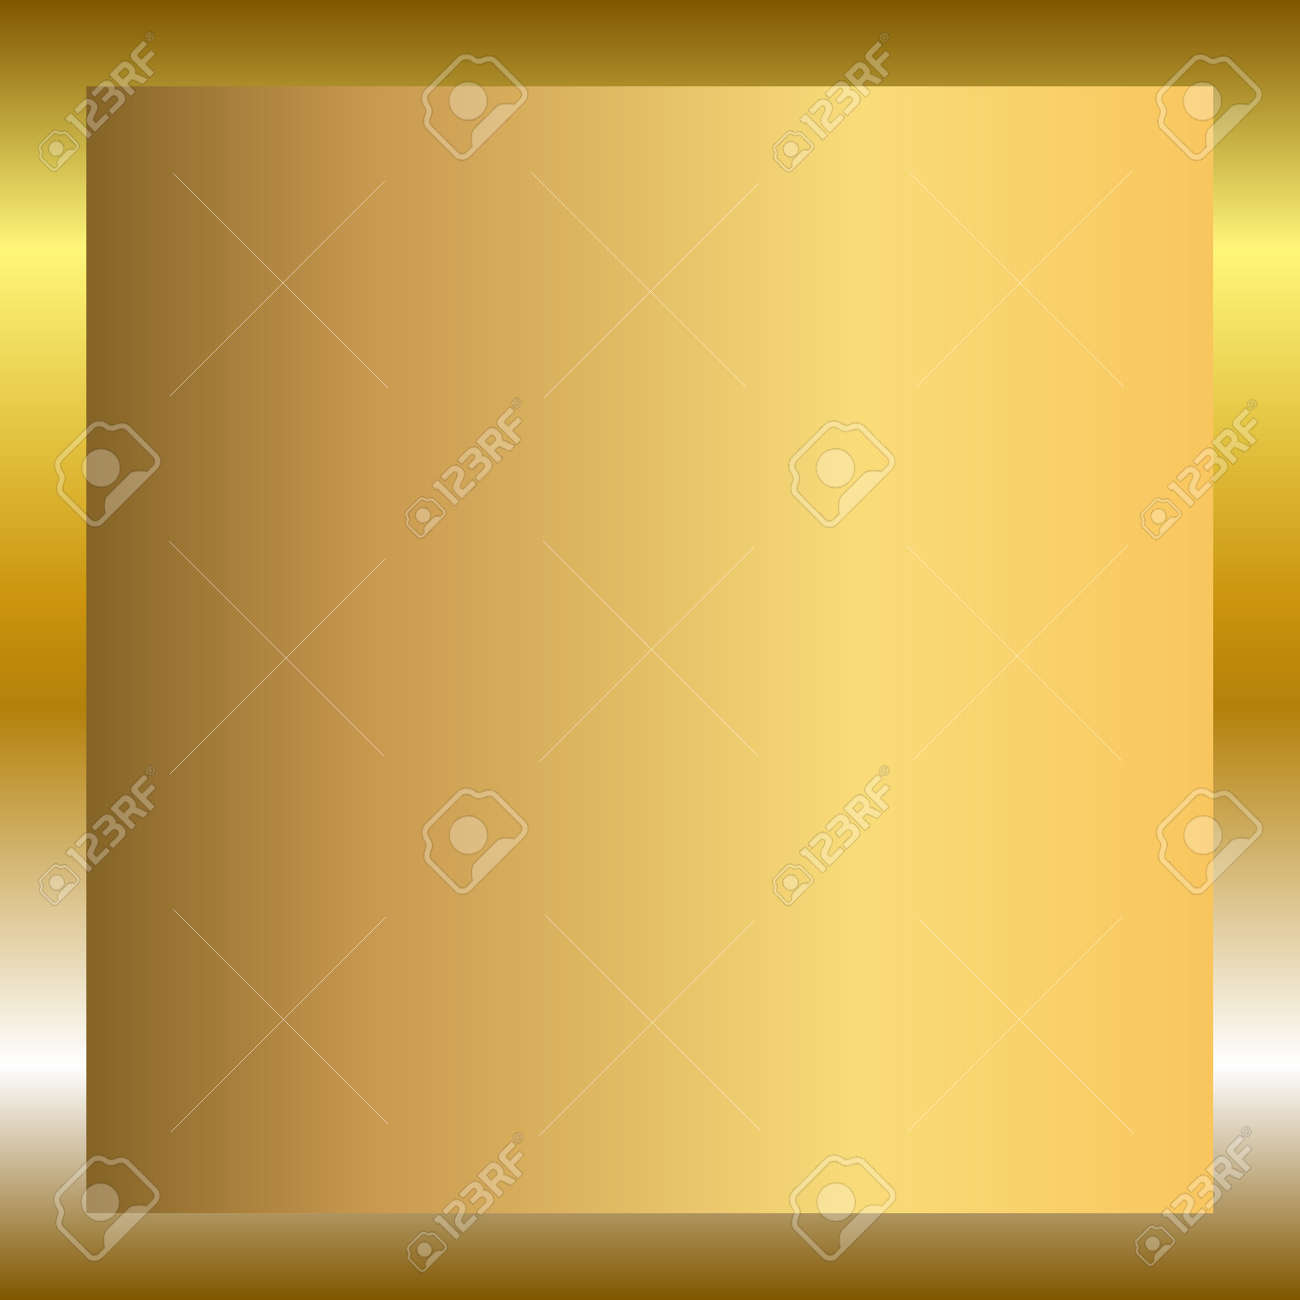 Gold Texture Vertical Square Pattern In Frame. Light Realistic ...